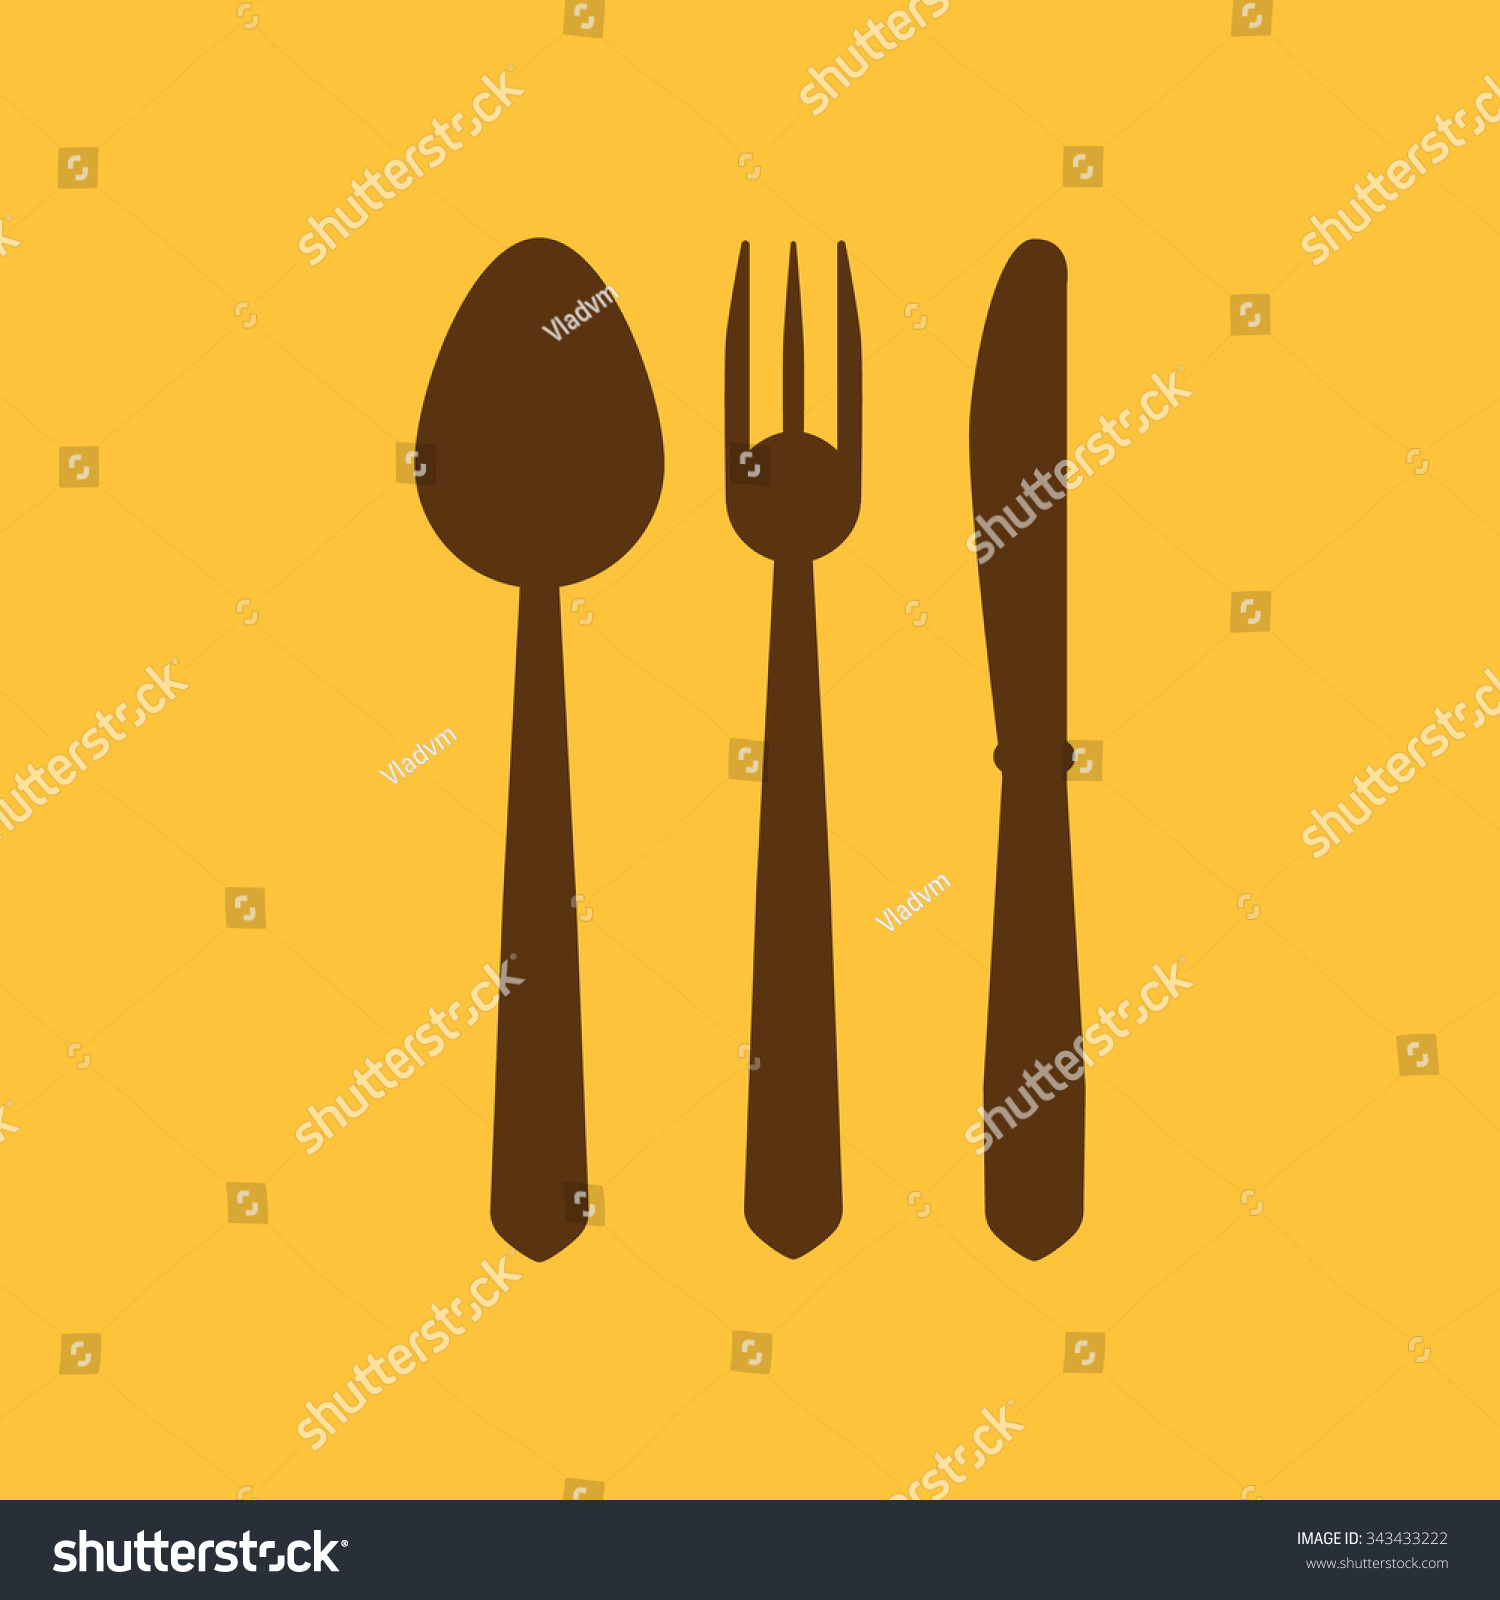 The Spoon And Fork And Knife Icon Spoon And Fork And Knife Symbol